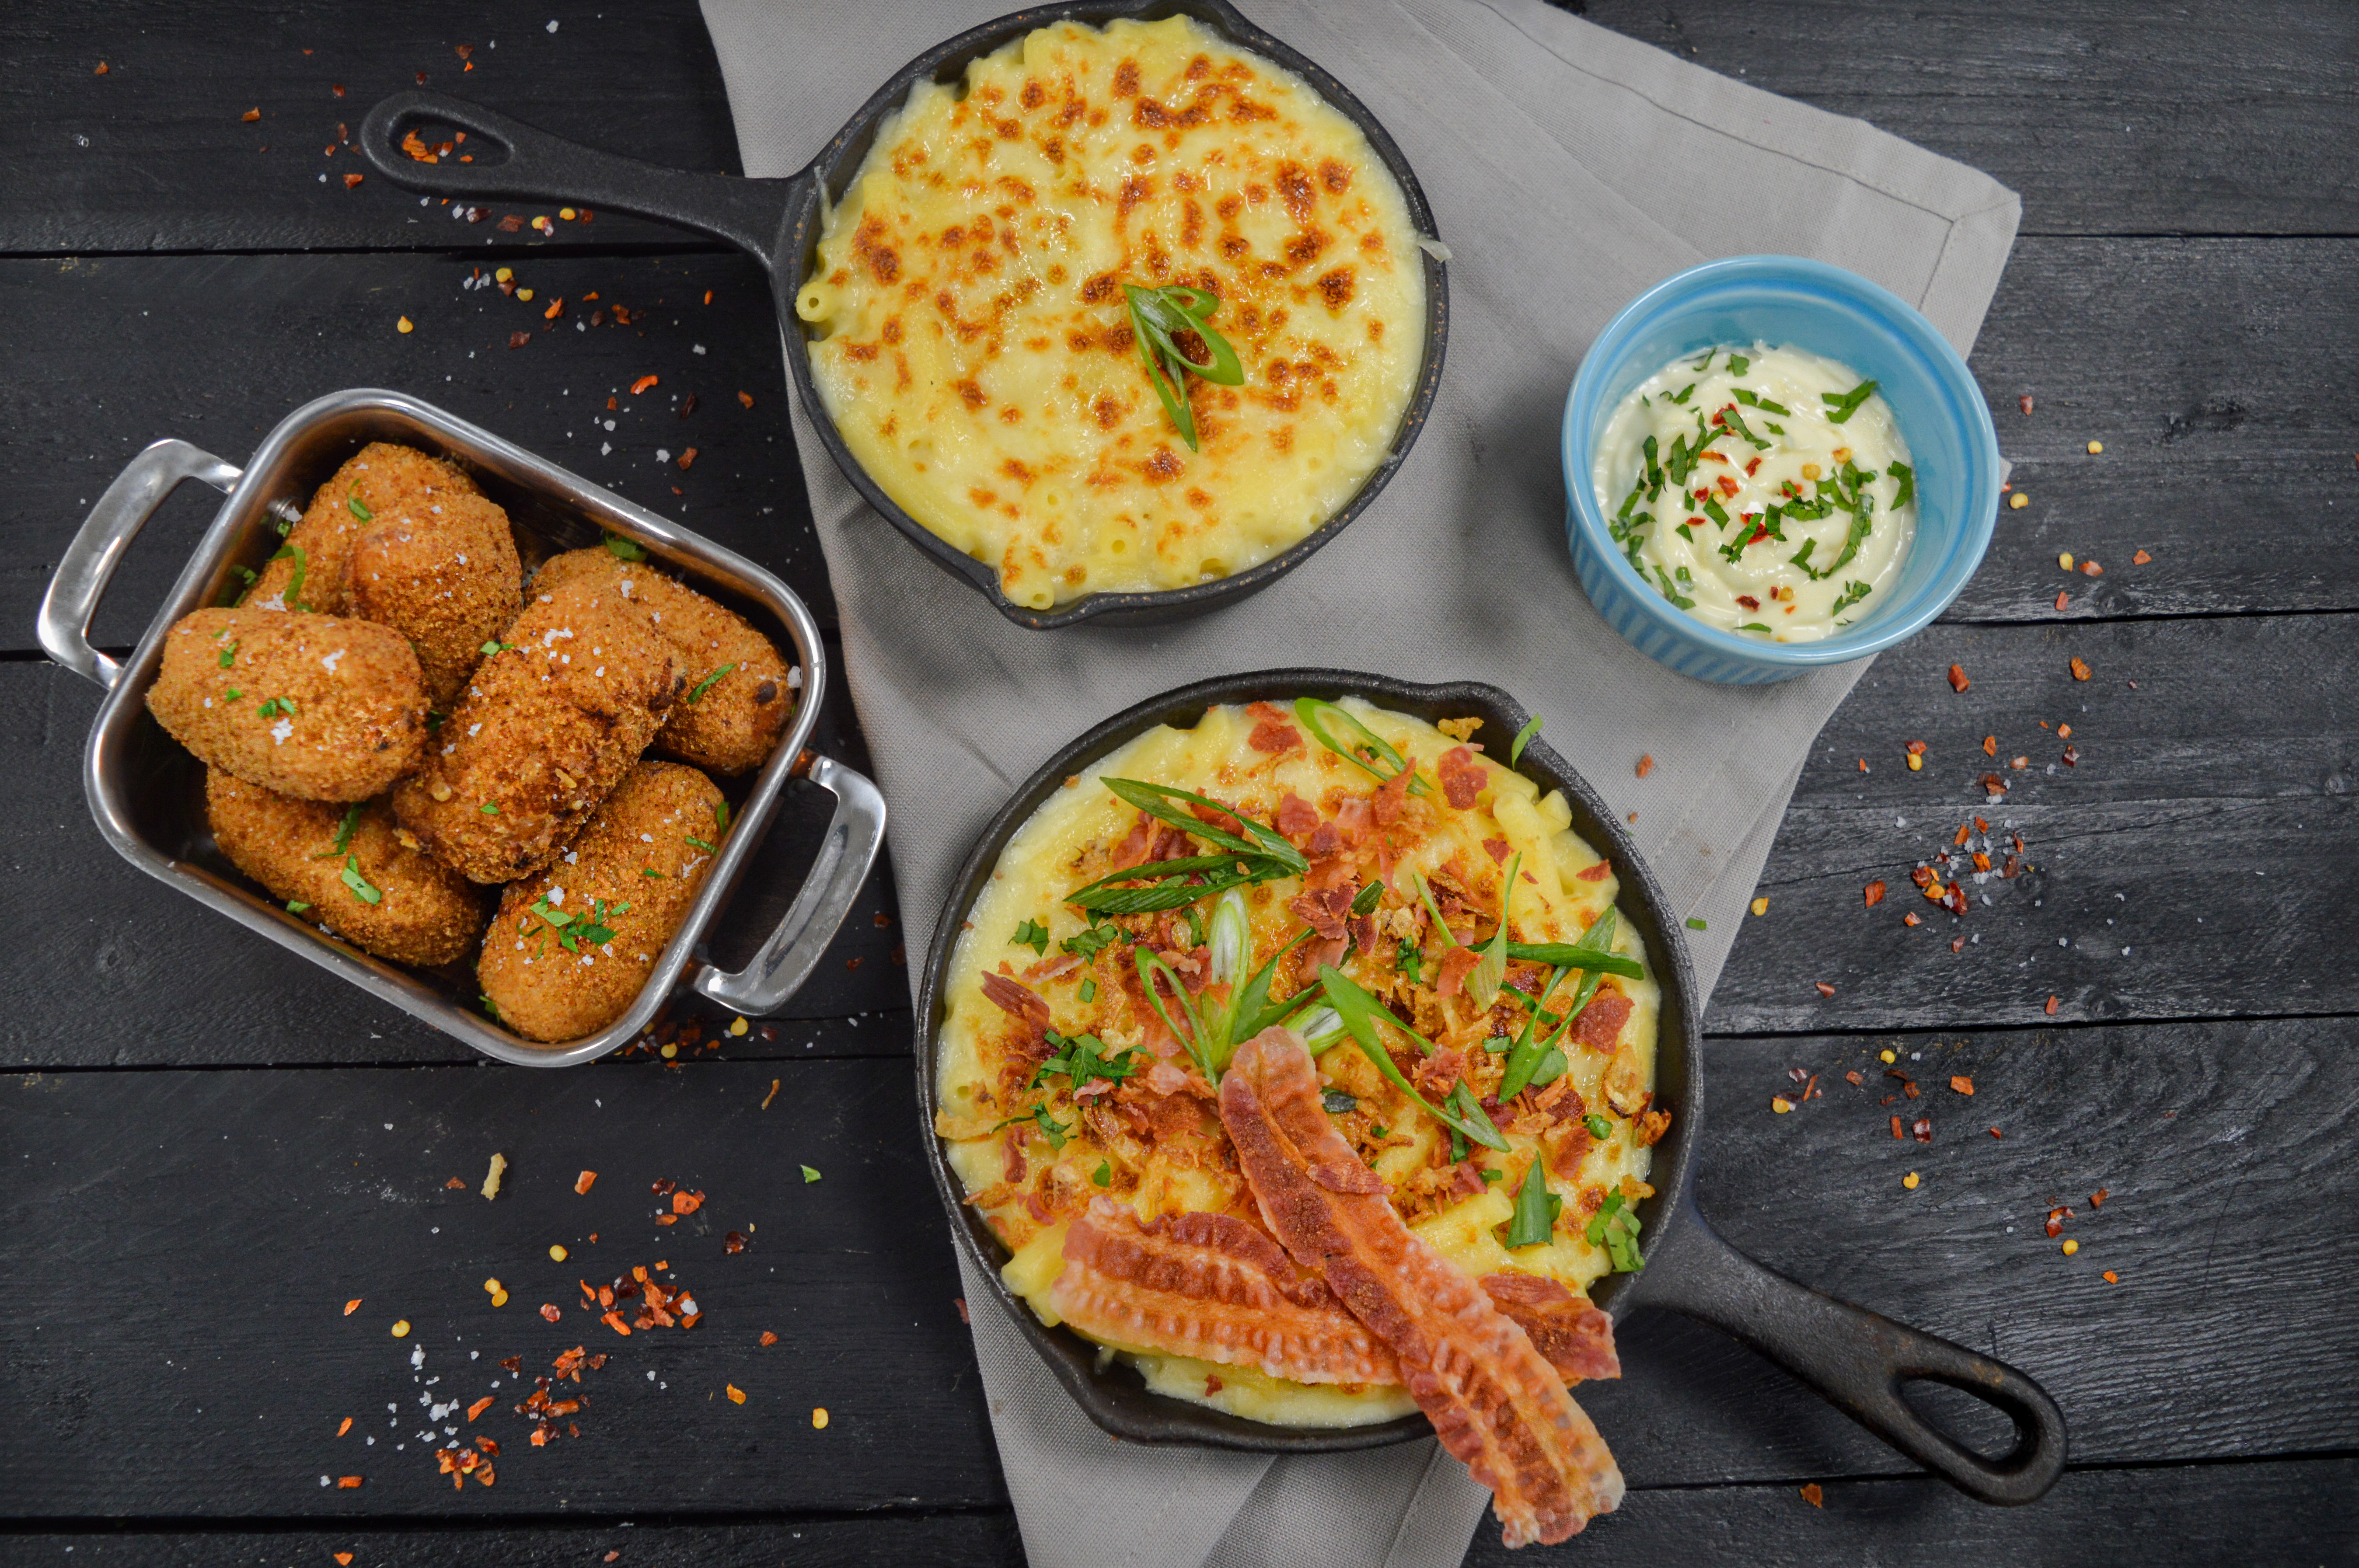 Mac 'n' Cheese Bake fully loaded with bacon and chorizo with Chipotle Mac 'n' Cheese Croquettes